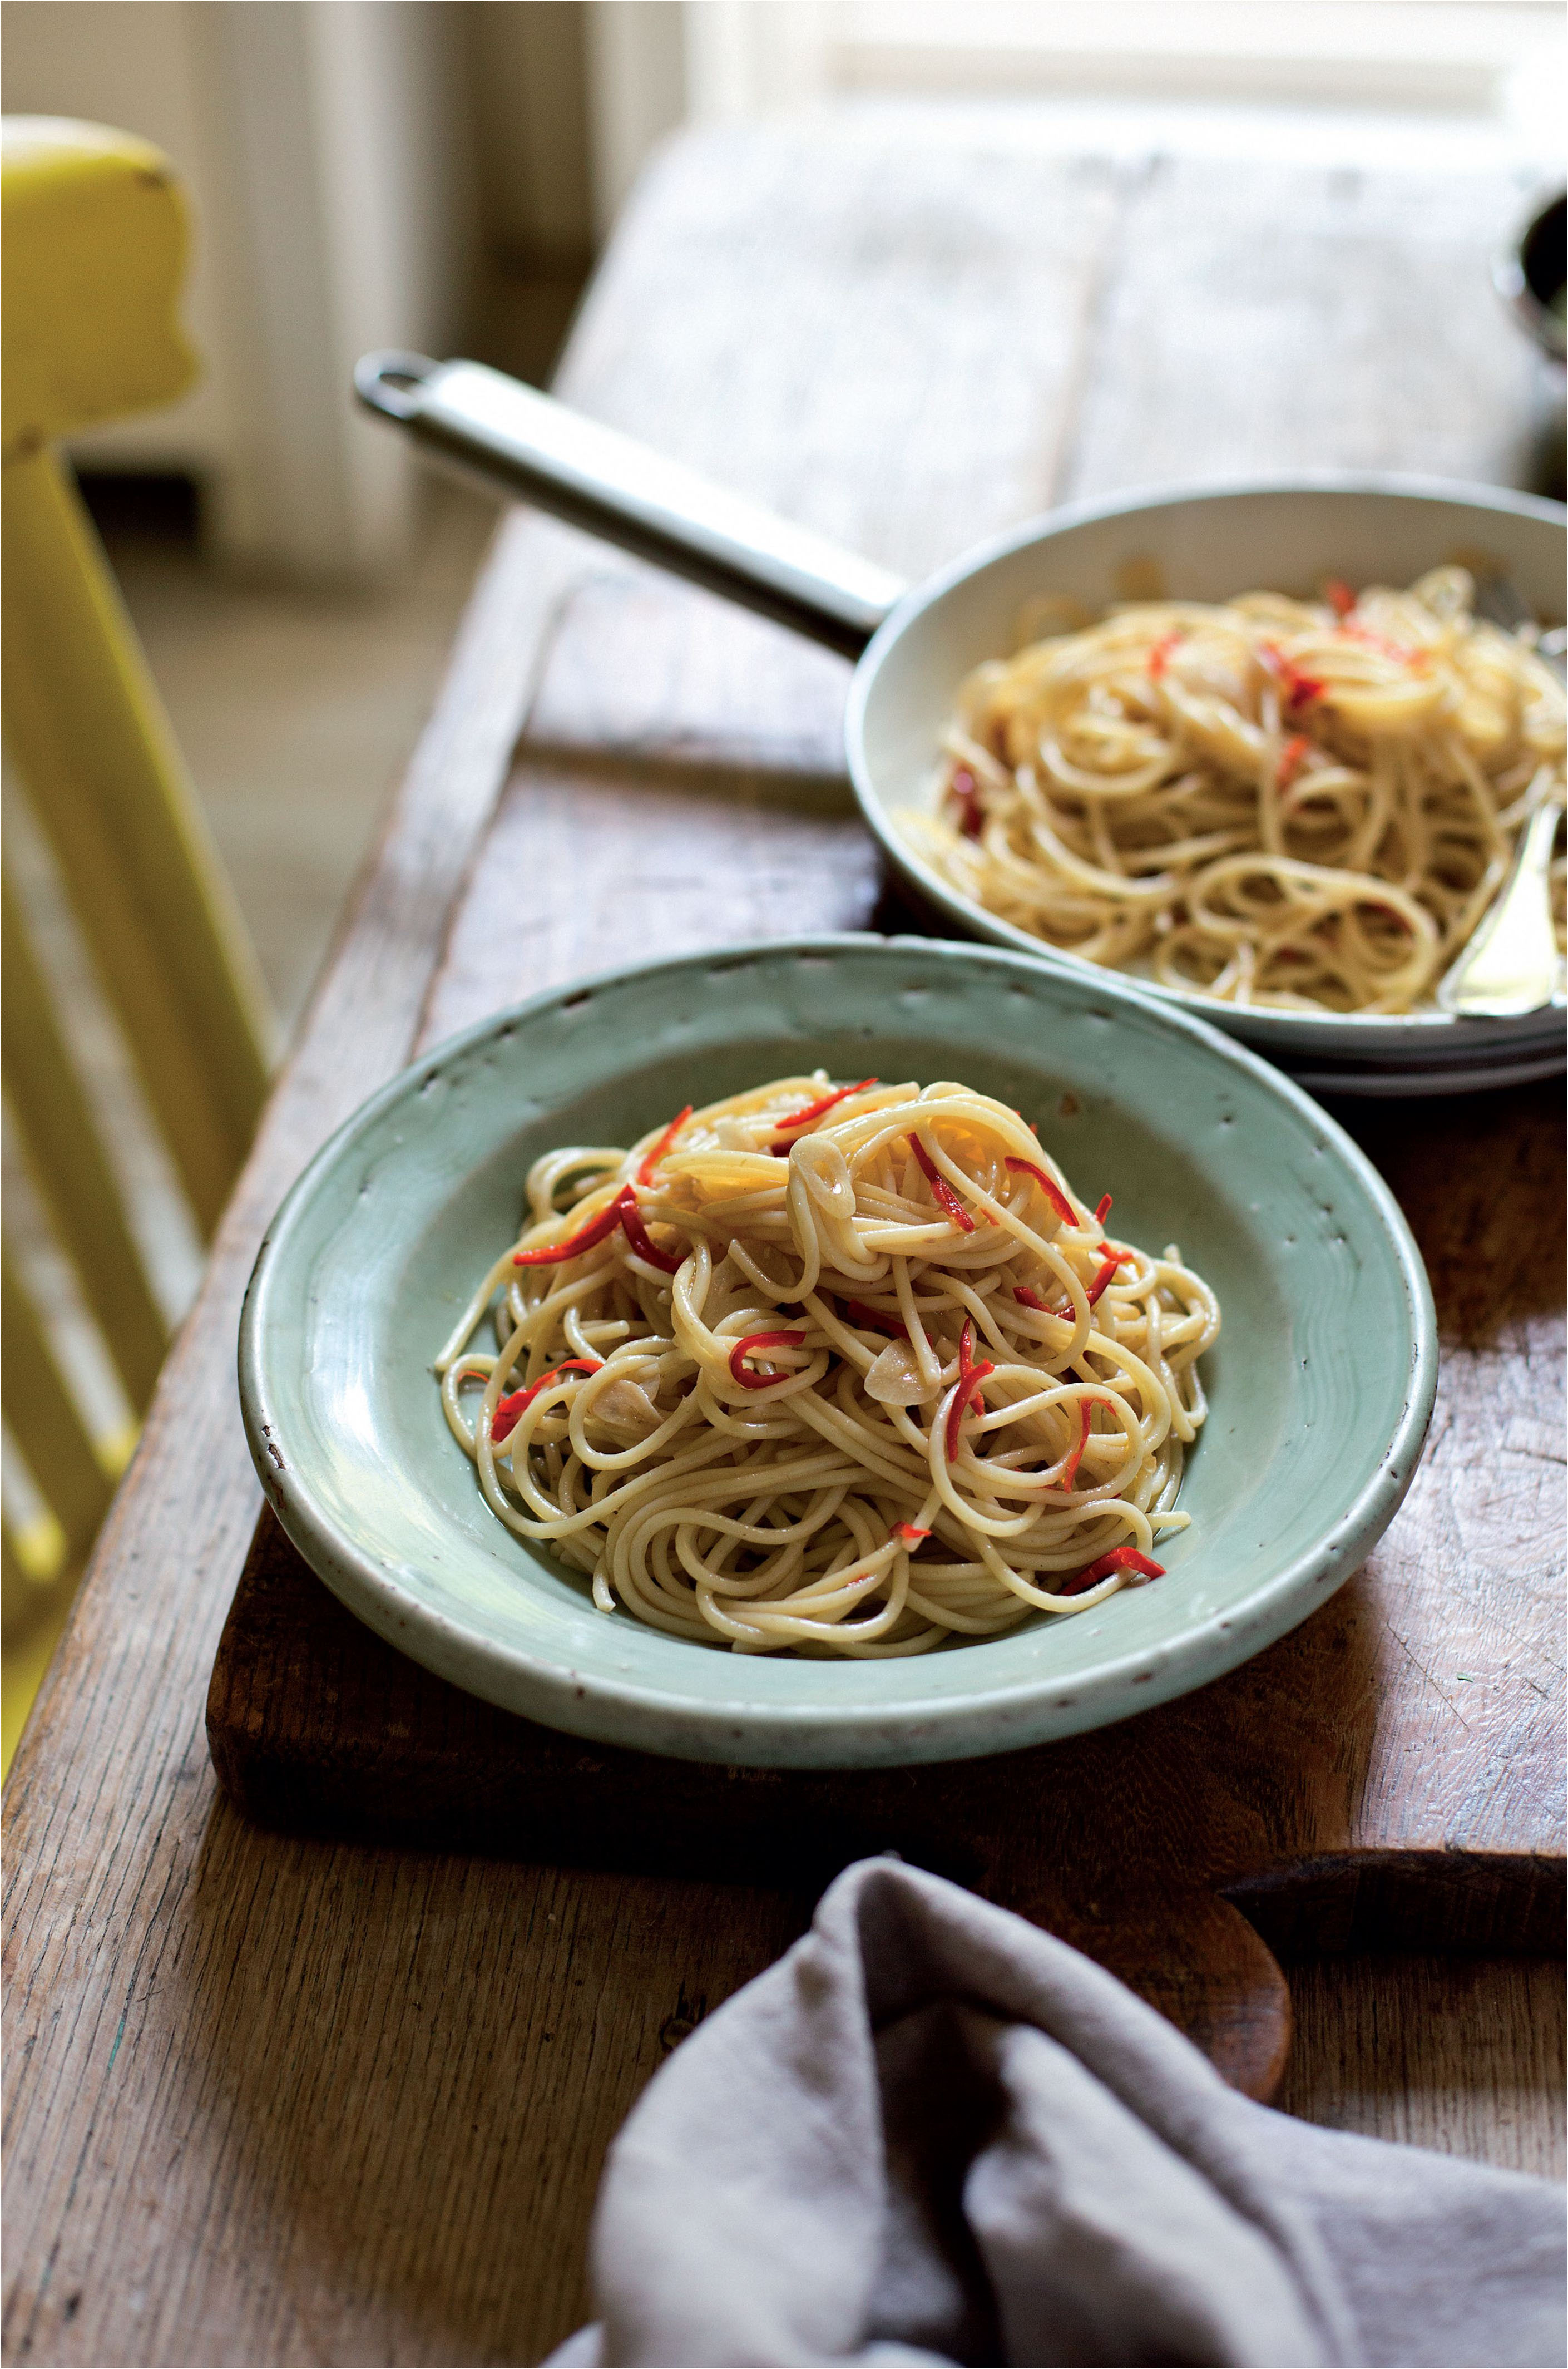 Classic spaghetti with garlic, olive oil and chilli